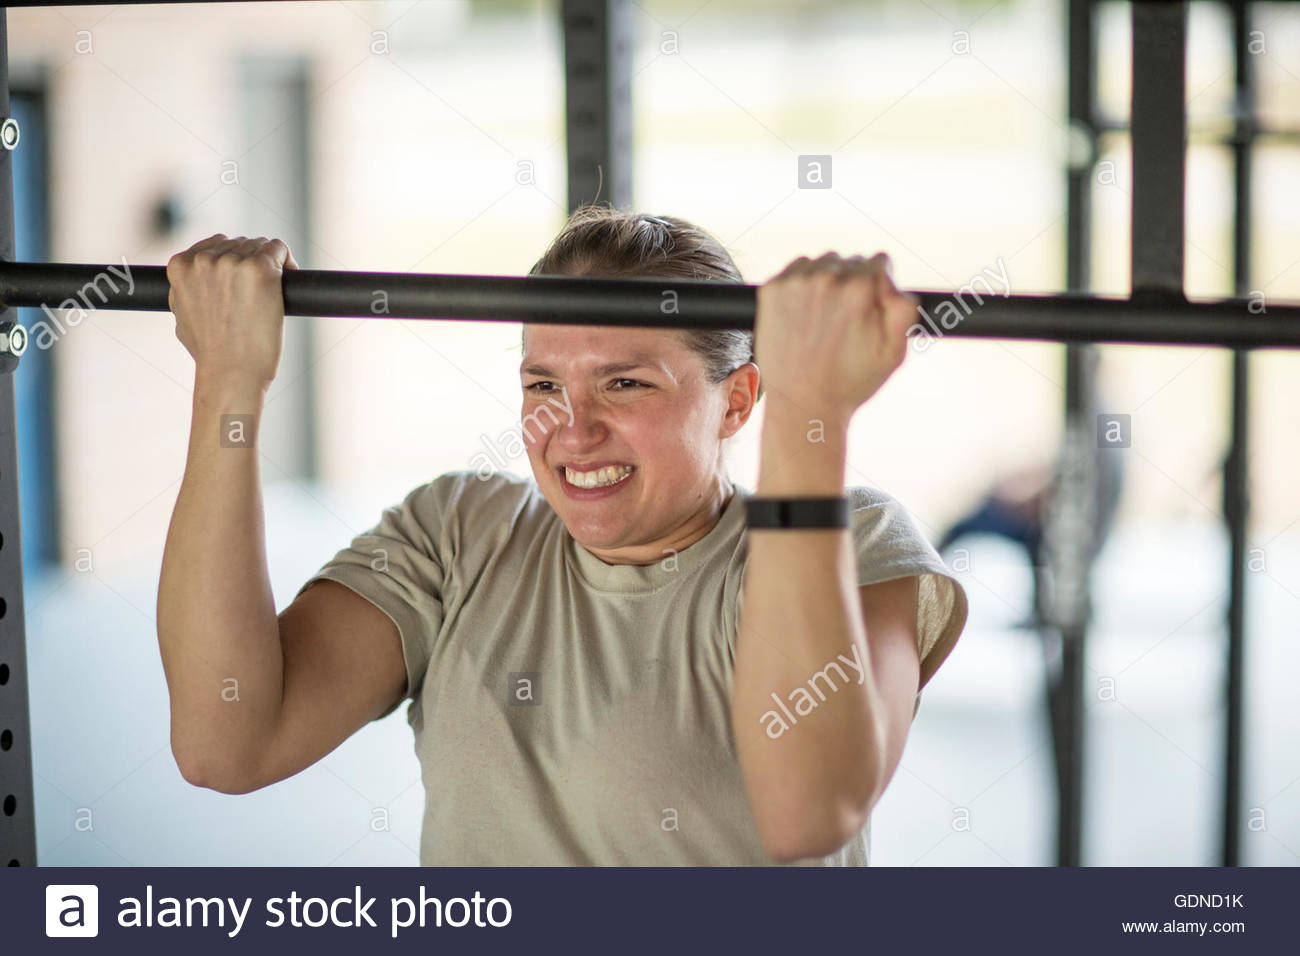 Determined female soldier doing pull ups at military air force base - Stock Image